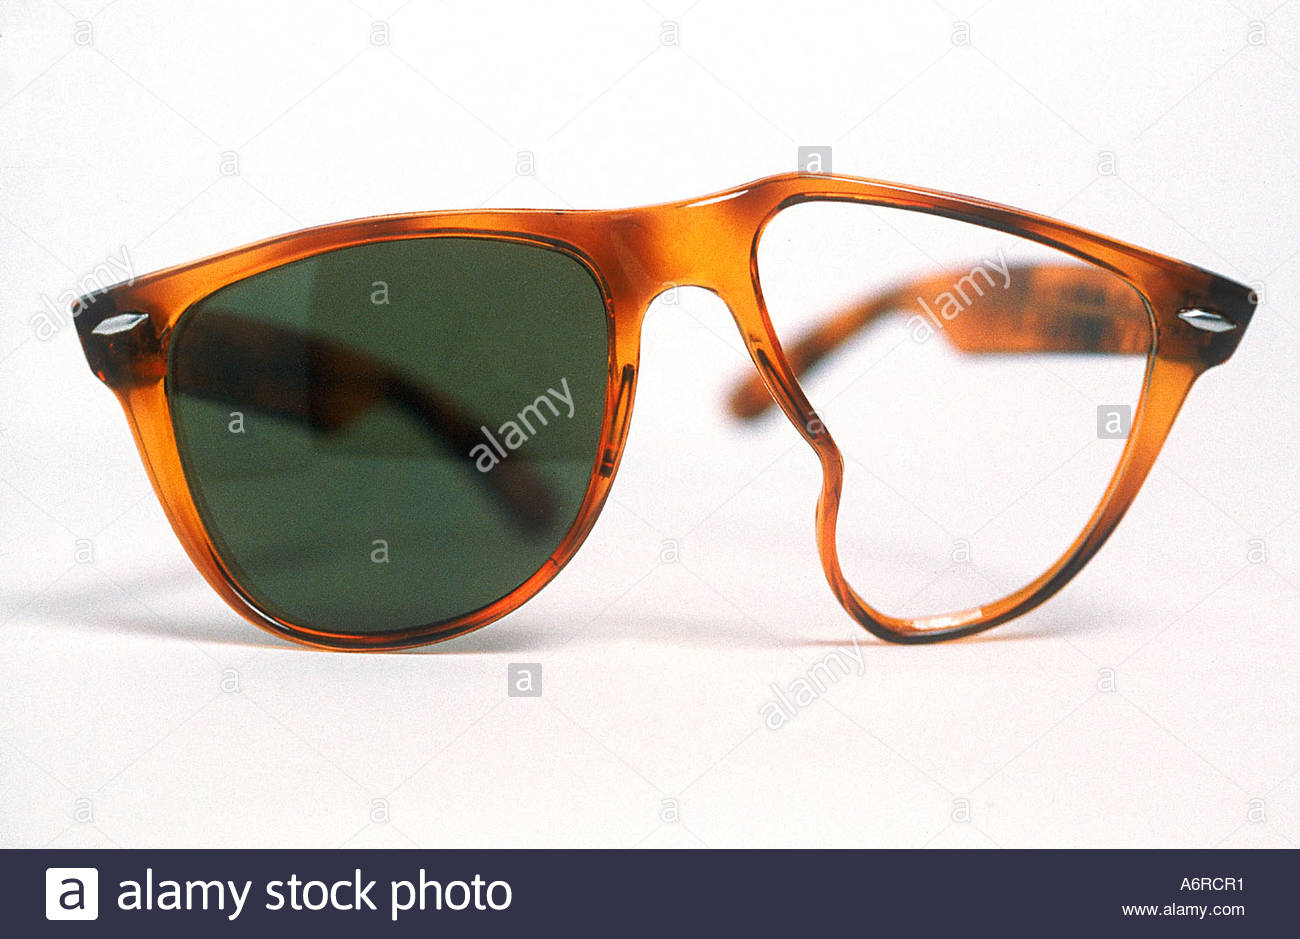 Broken Glasses Stock Photos & Broken Glasses Stock Images ...